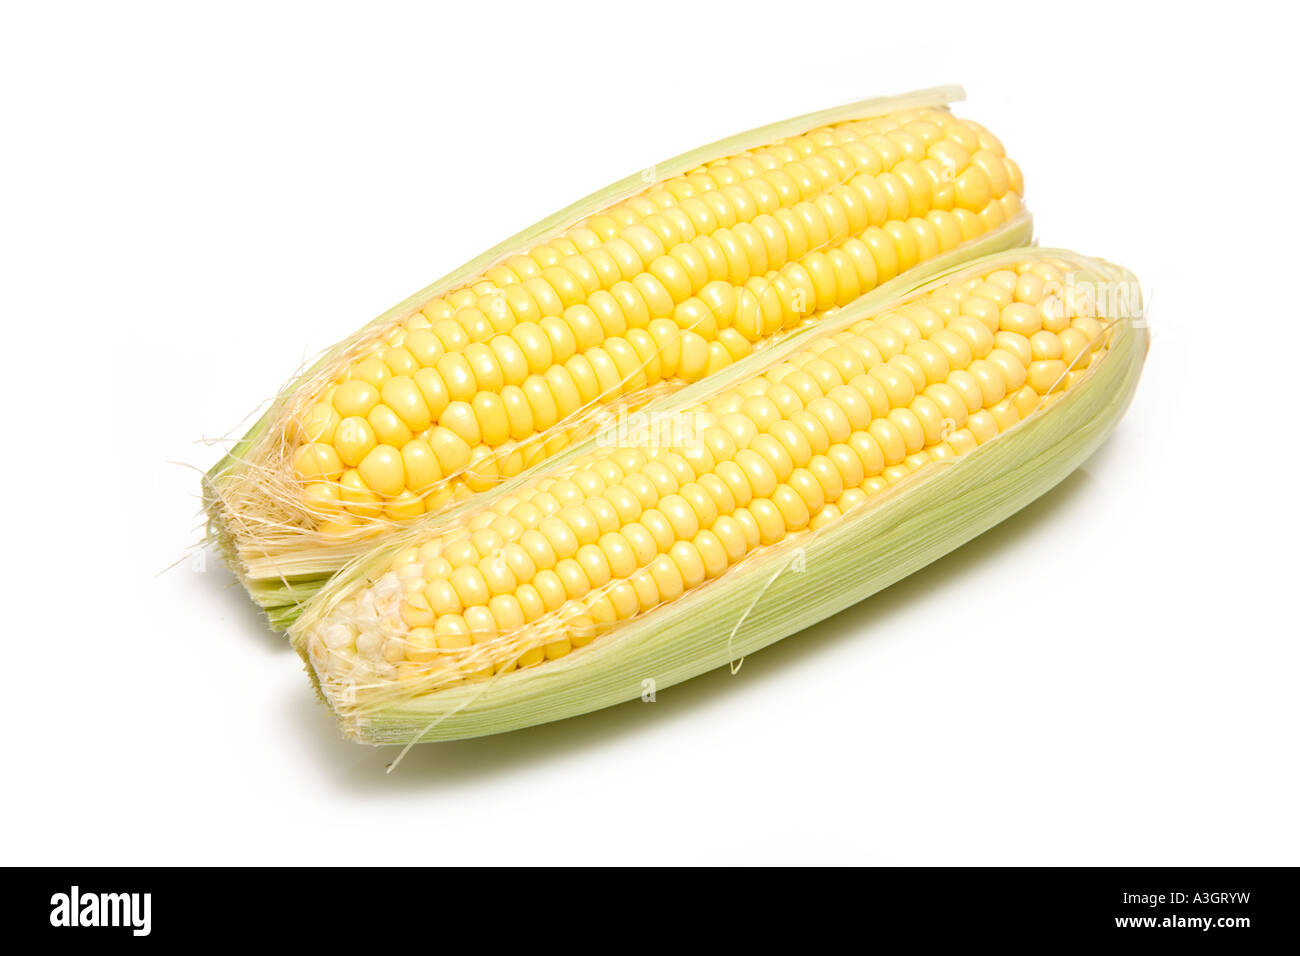 Corn on the cob isolated on a white studio background. - Stock Image